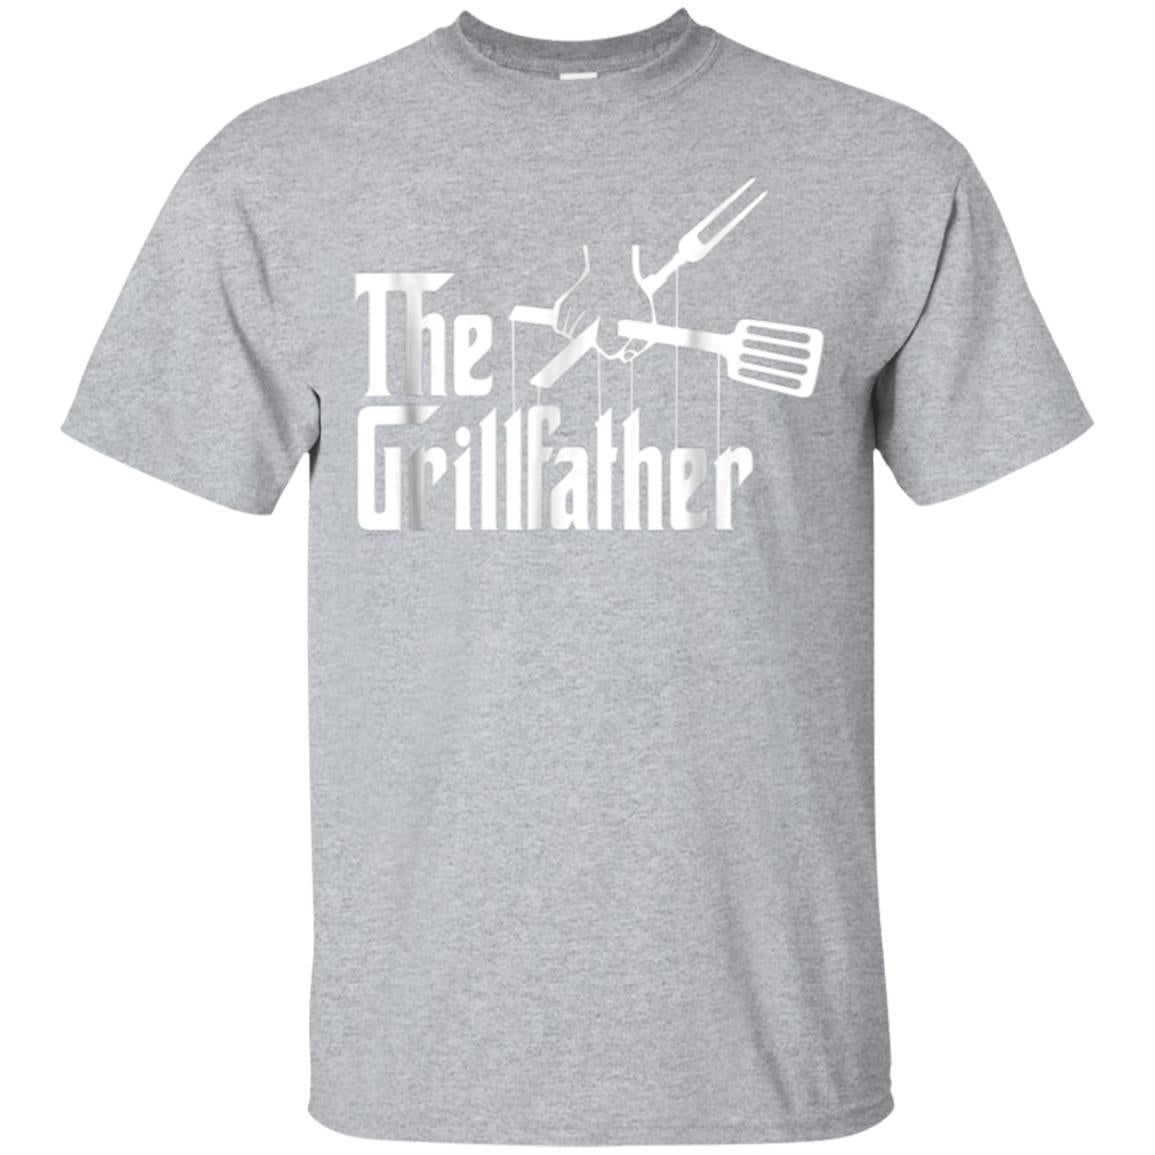 The Grillfather - BBQ Smoker Grilling Barbecue Shirt 99promocode